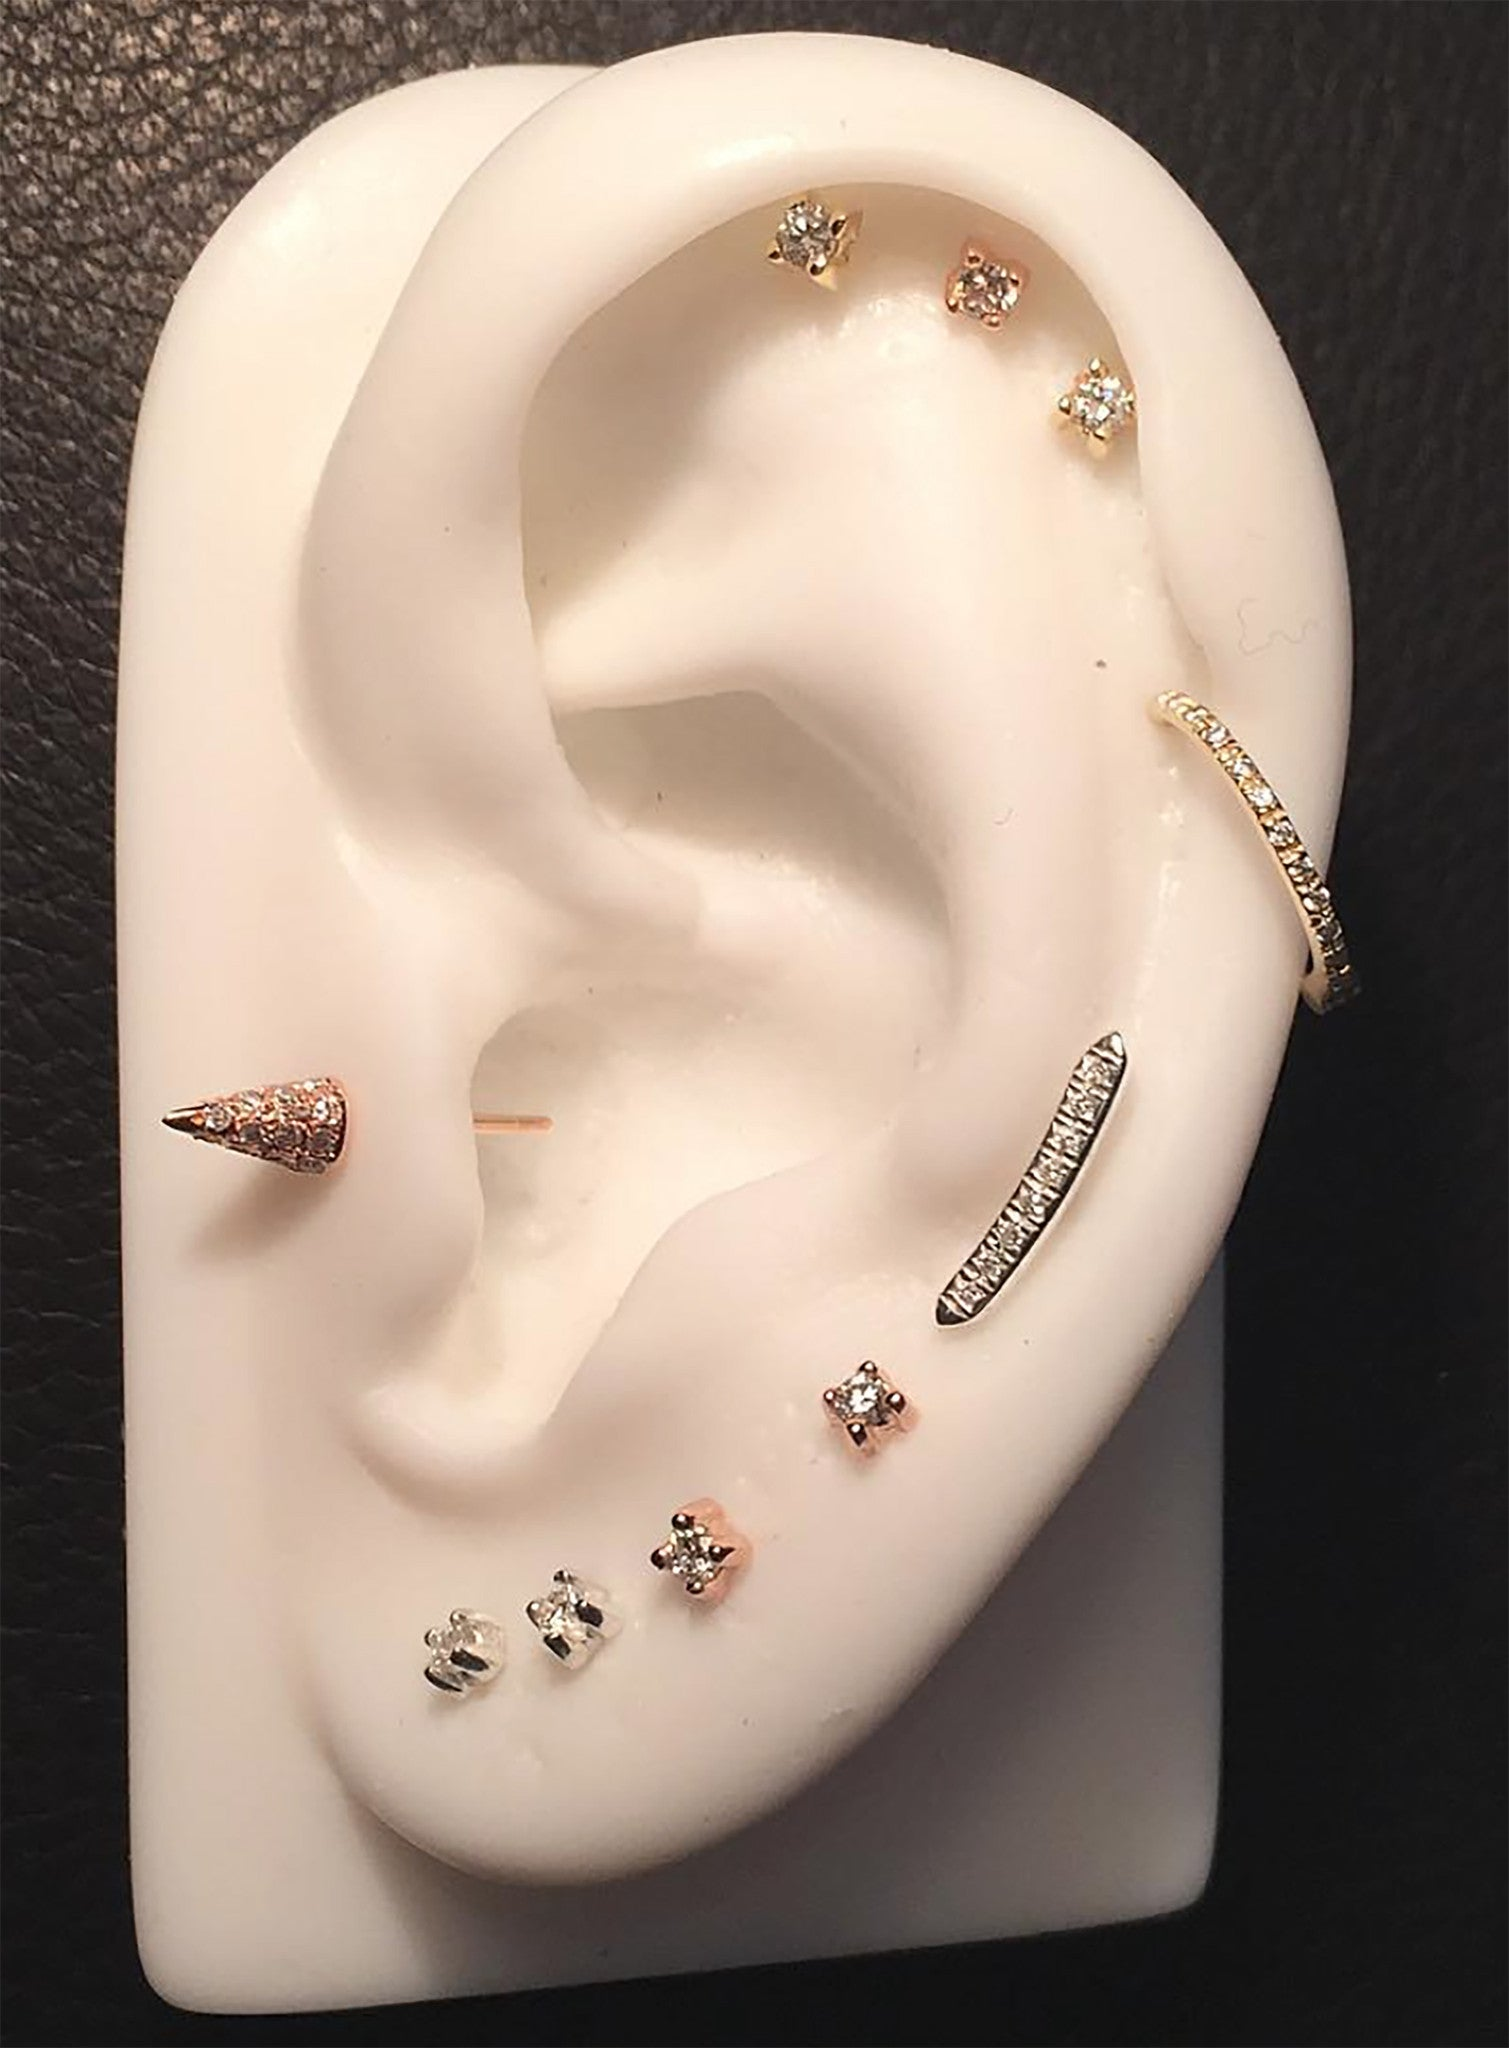 Micro Pave Eight 8 Diamonds Curved Line Bar Stud Climber Earrings Wendy Nichol Fine Jewelry Designer solid 14k Gold Yellow Rose White Sterling Silver Black Diamonds White Diamonds Simple Elegant Dainty First Second Ear Piercing Lower Lobe Upper Lobe Snug Helix Cartilage